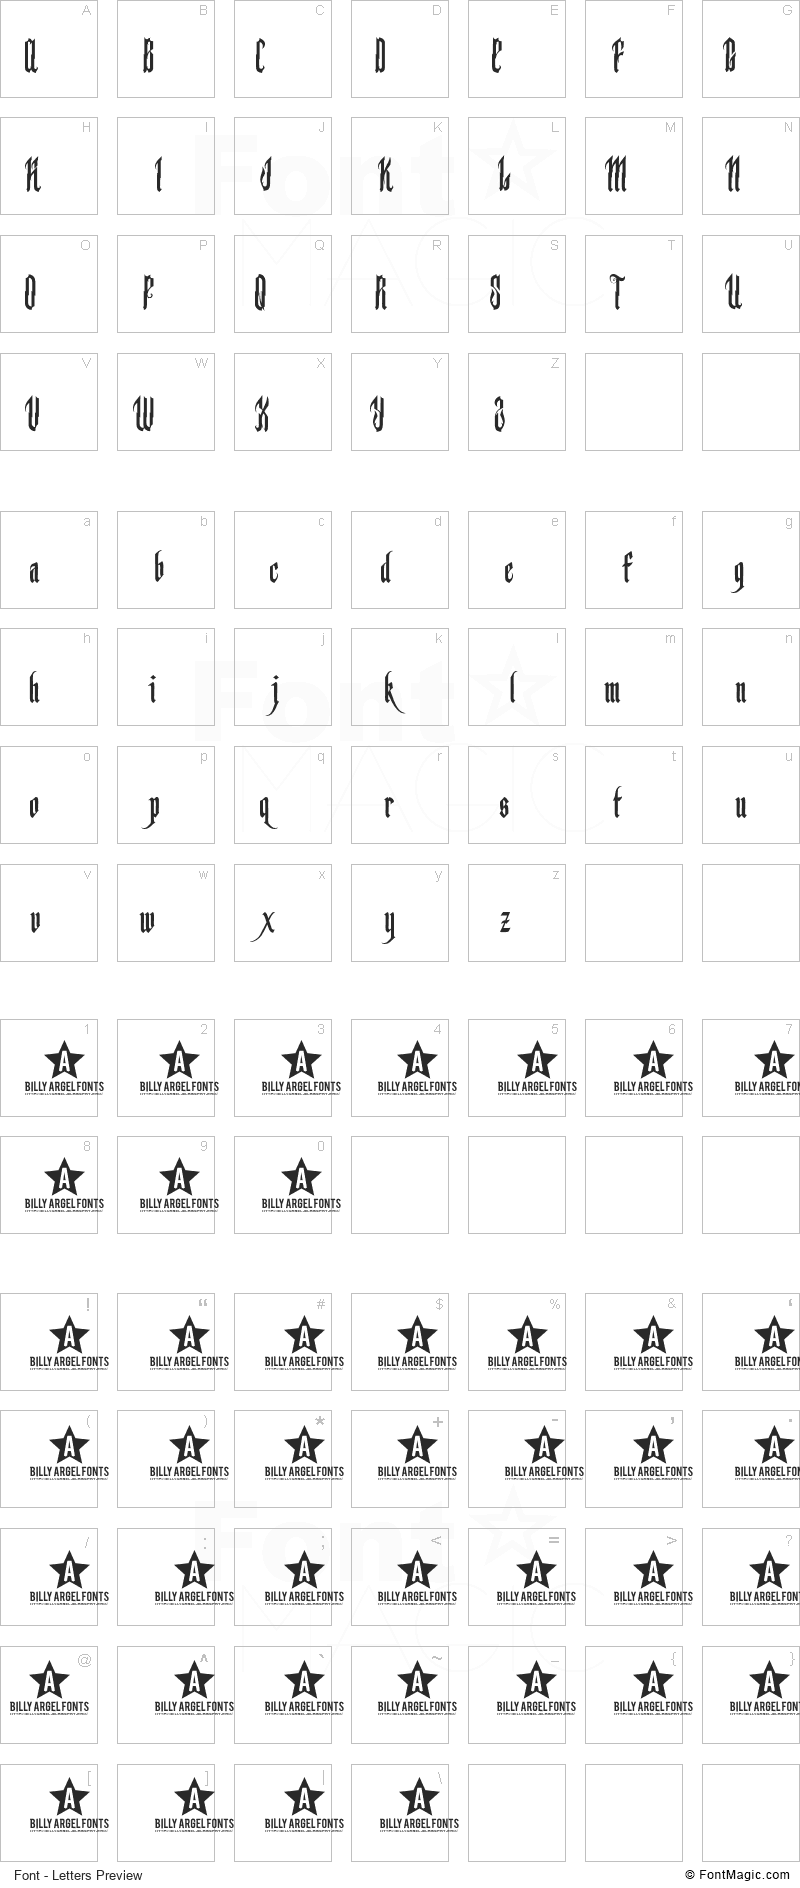 Backstab Font - All Latters Preview Chart